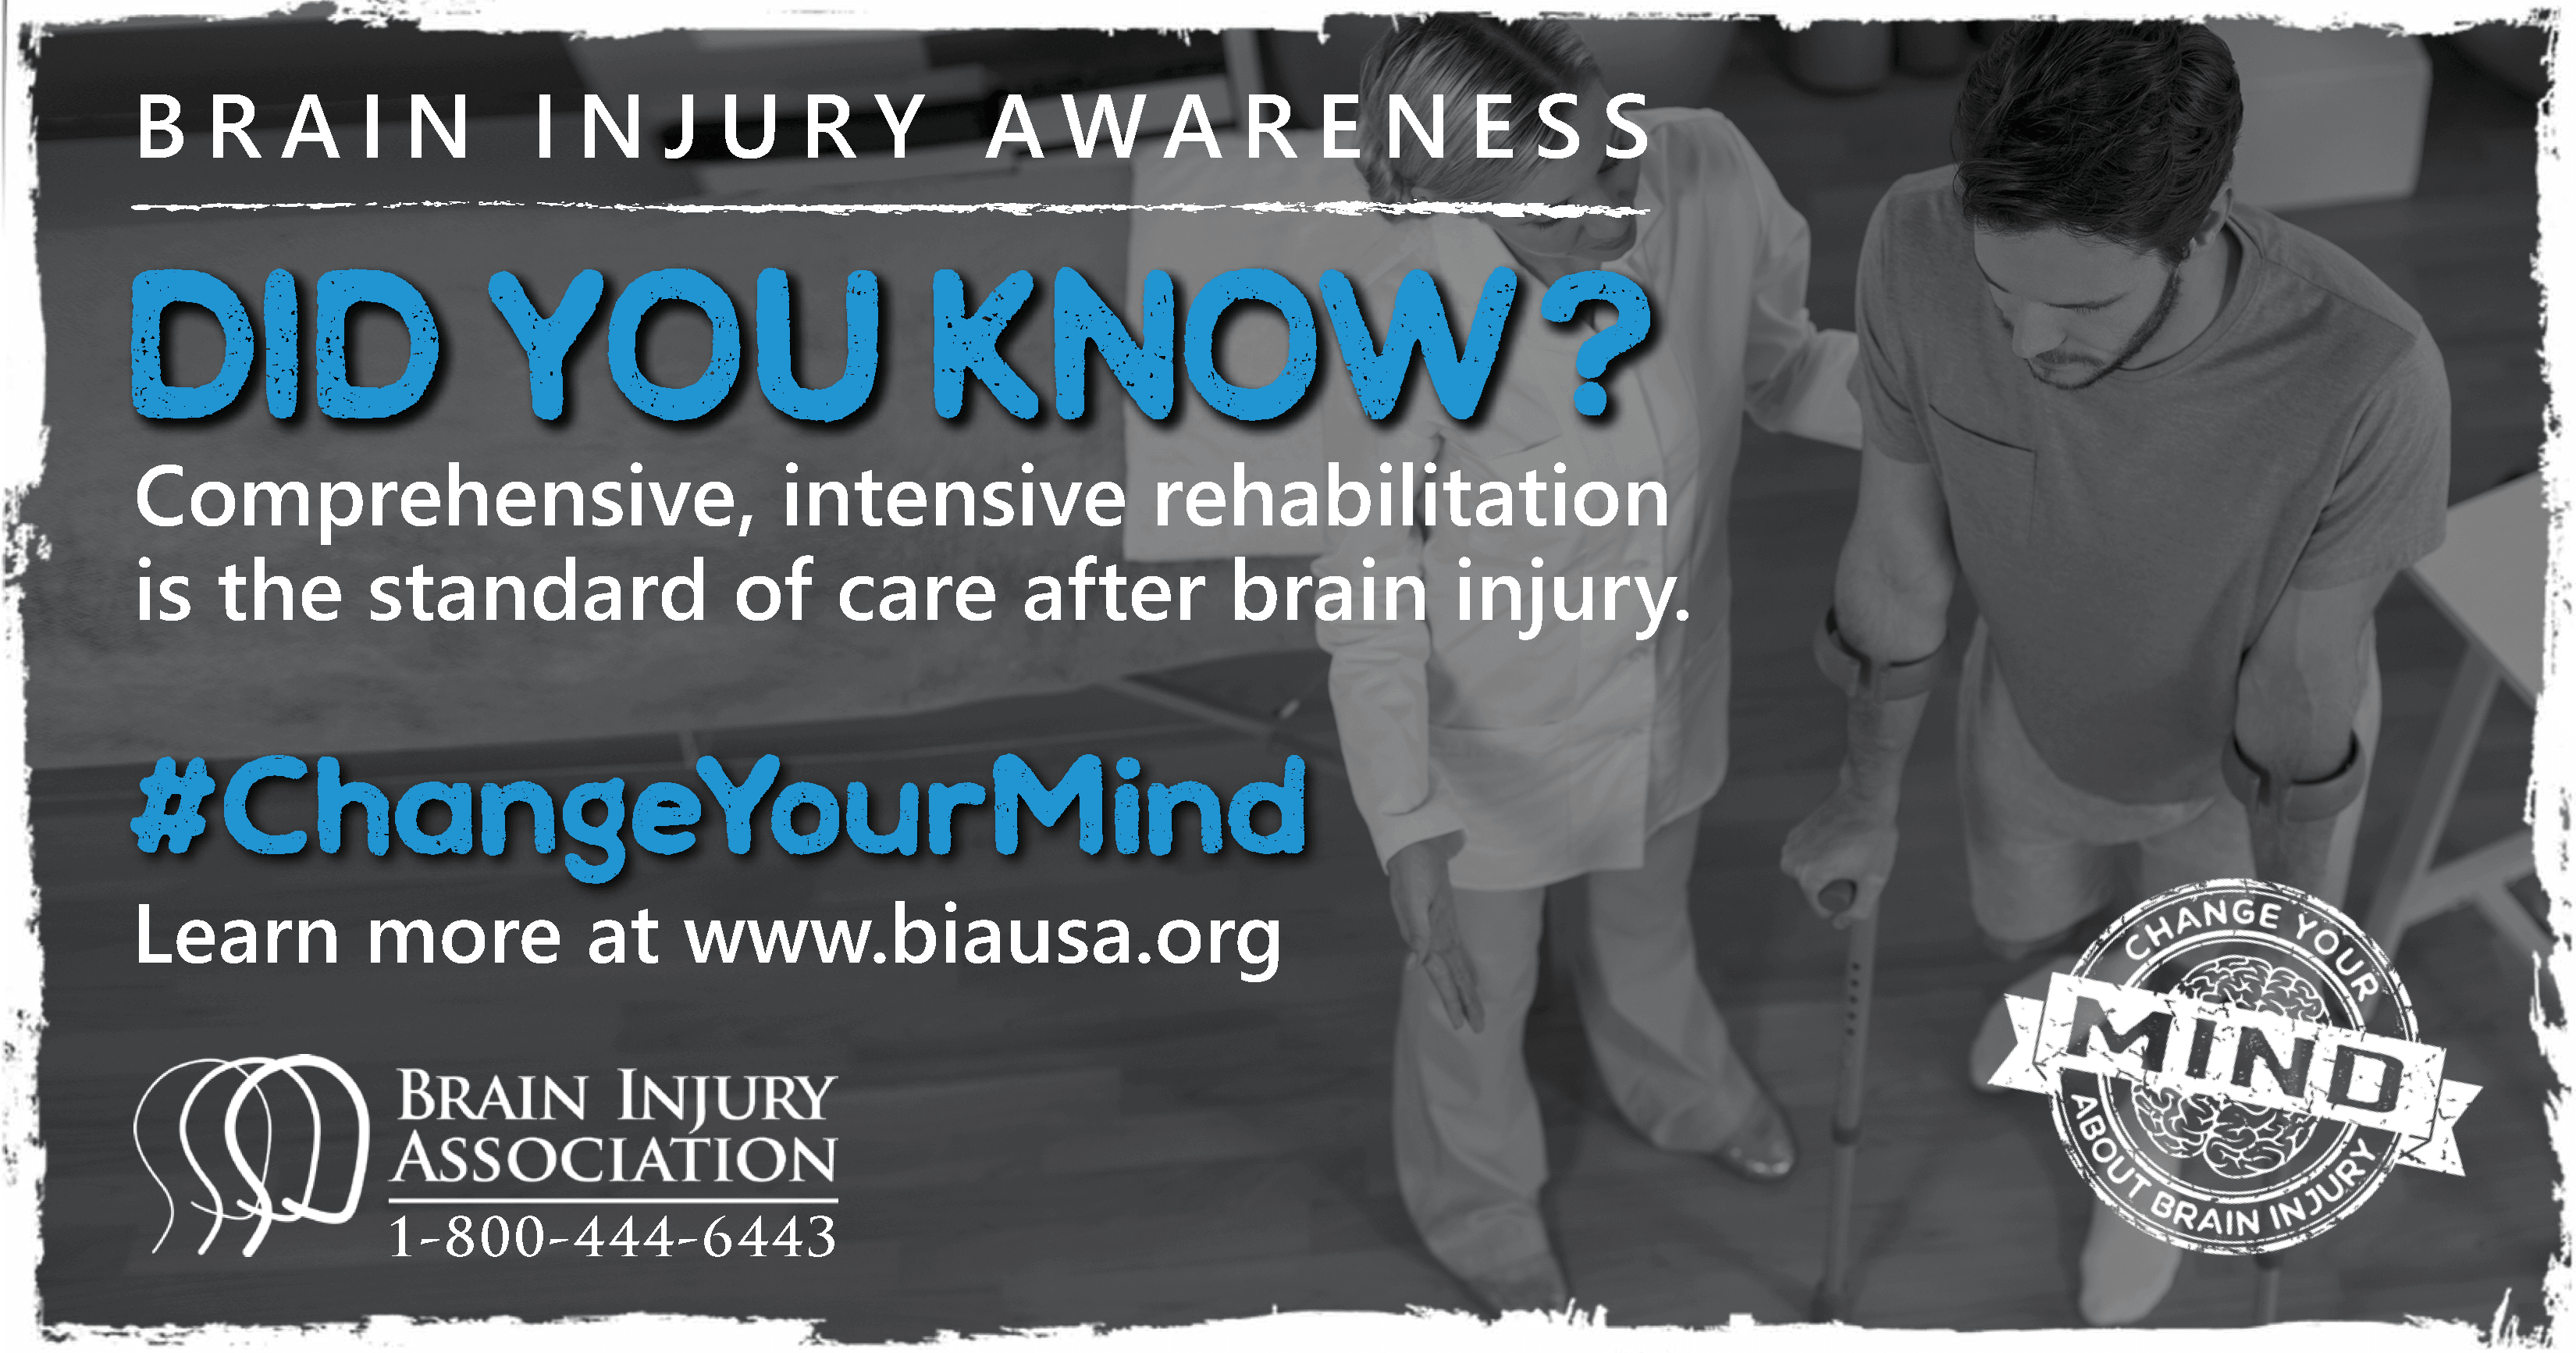 Comprehensive, intensive rehabilitation is the standard of care after brain injury.